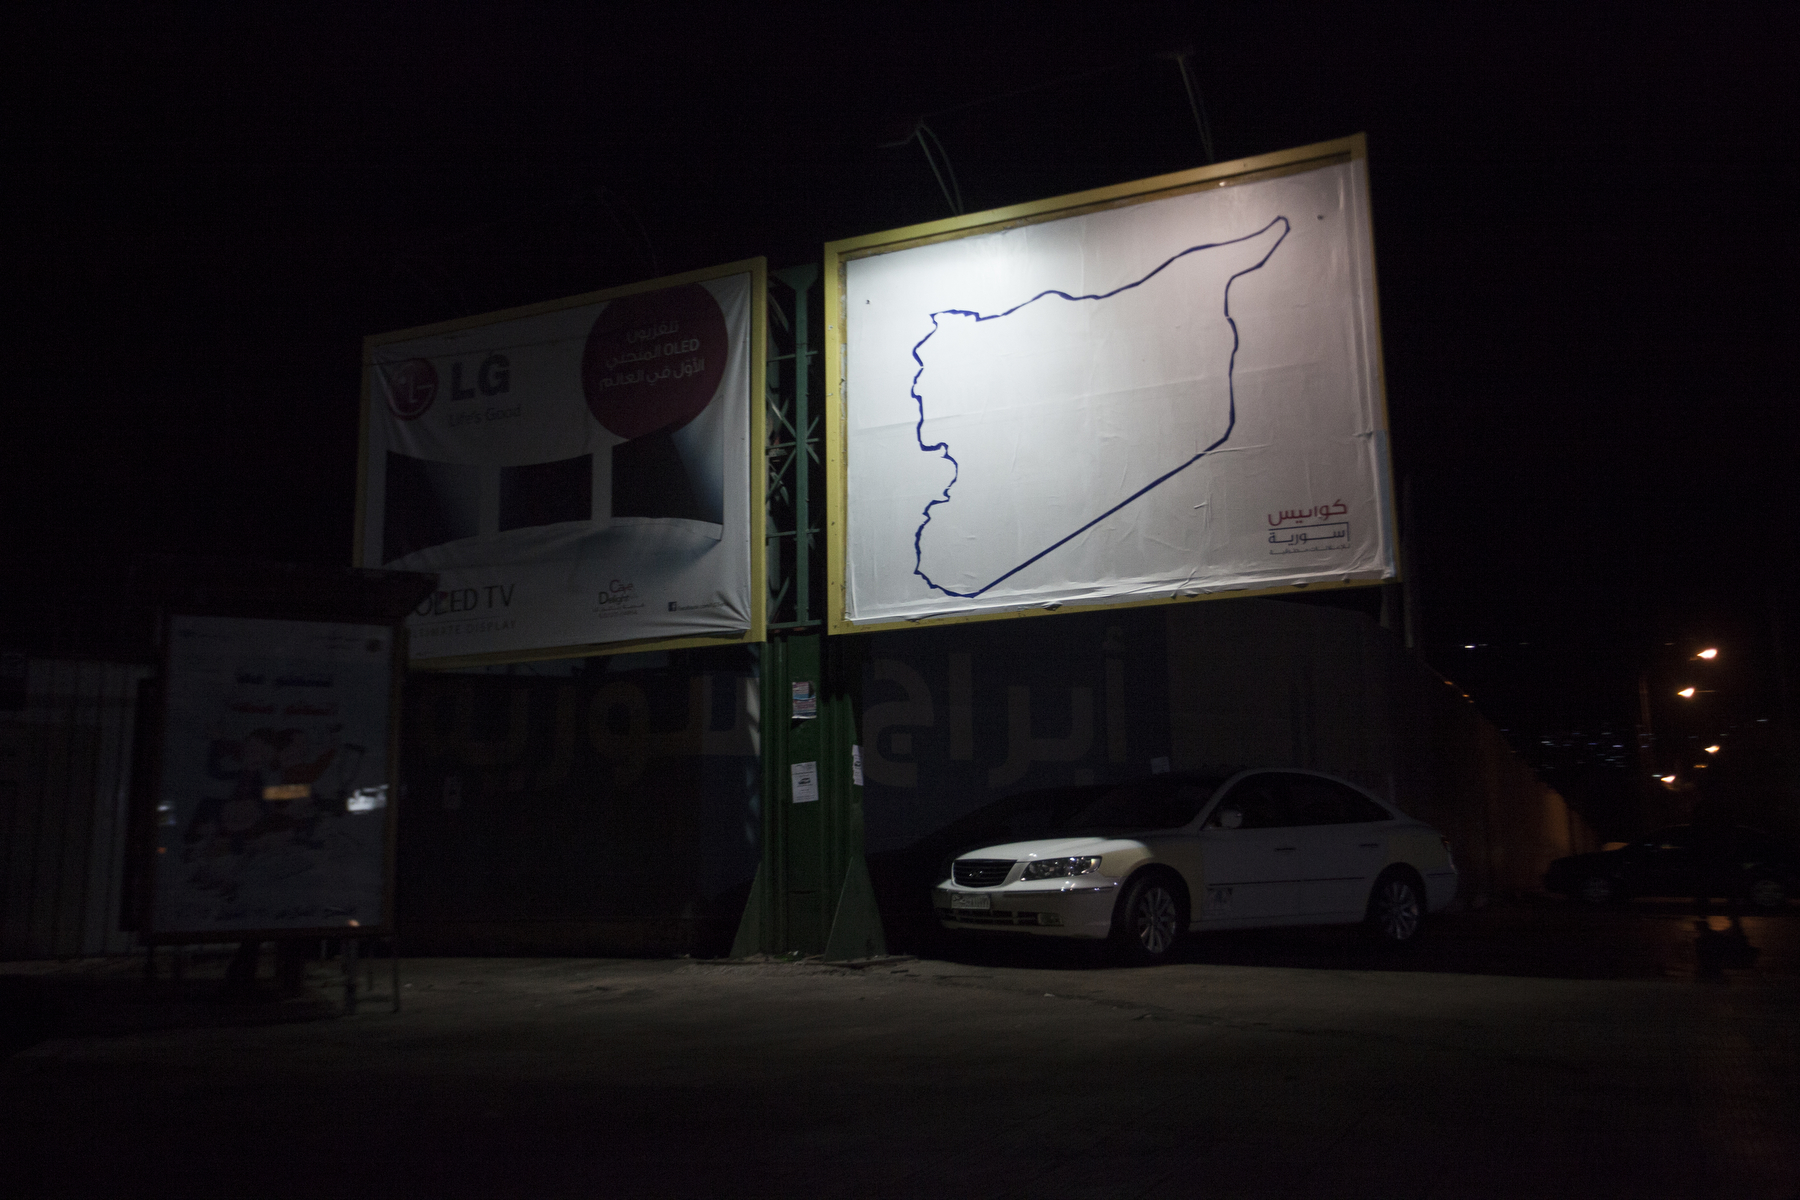 Damascus, 2015, A car is parked under the banner depicting the map of Syria.